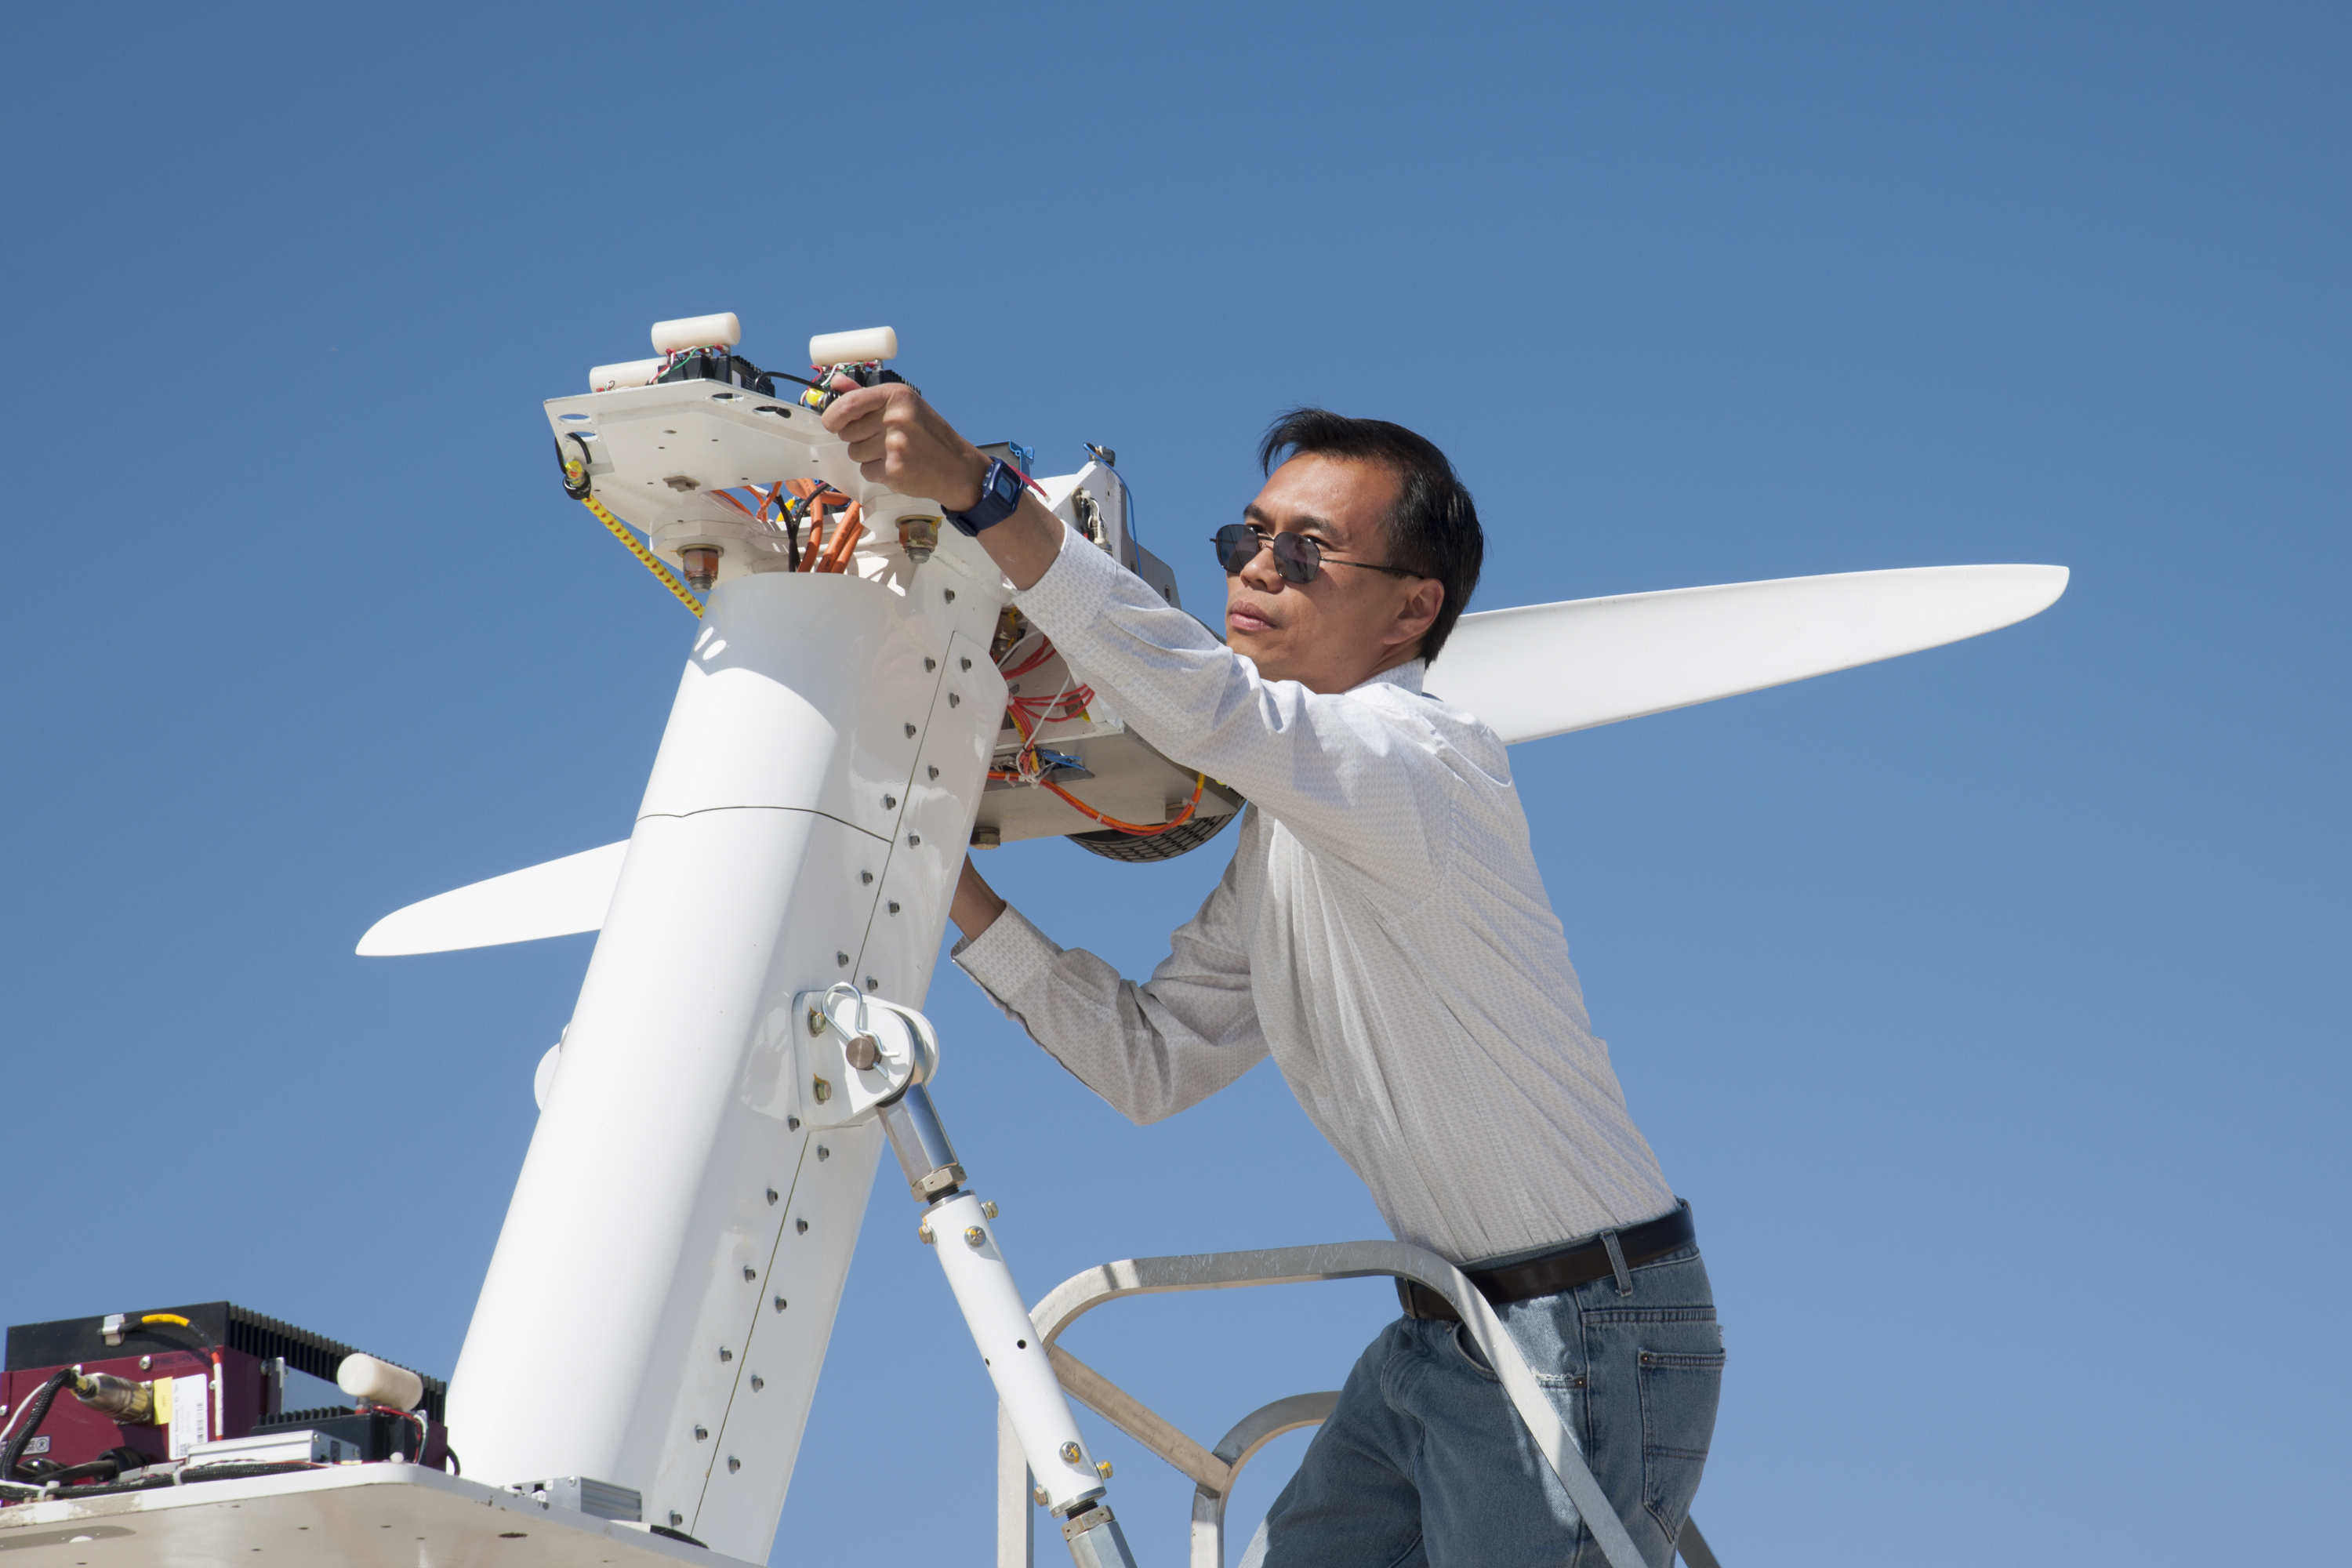 Electric design turns 22 - Aeronautics Yohan Lin Airvolt Integration Lead Prepares The Electric Propulsion Test Stand